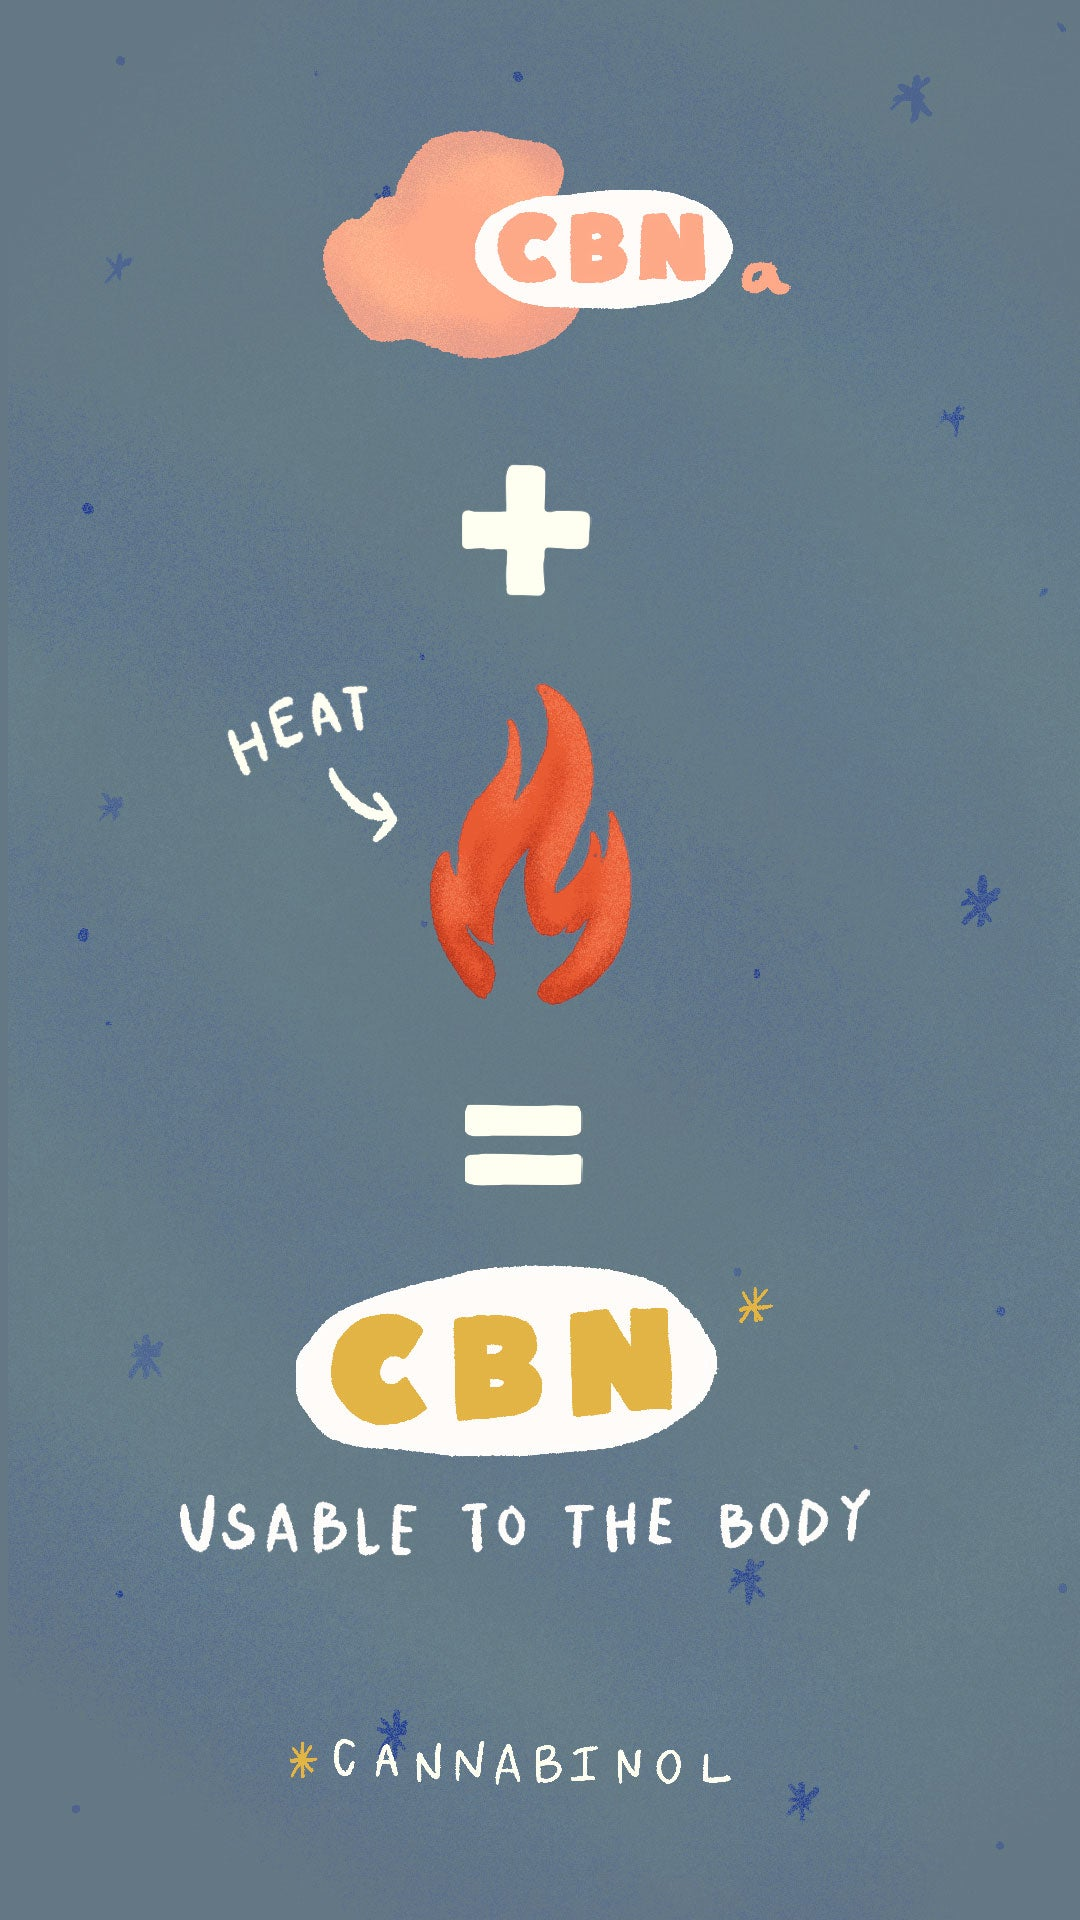 CBNa + heat = CBN, which is usable to the body. *cannabinol